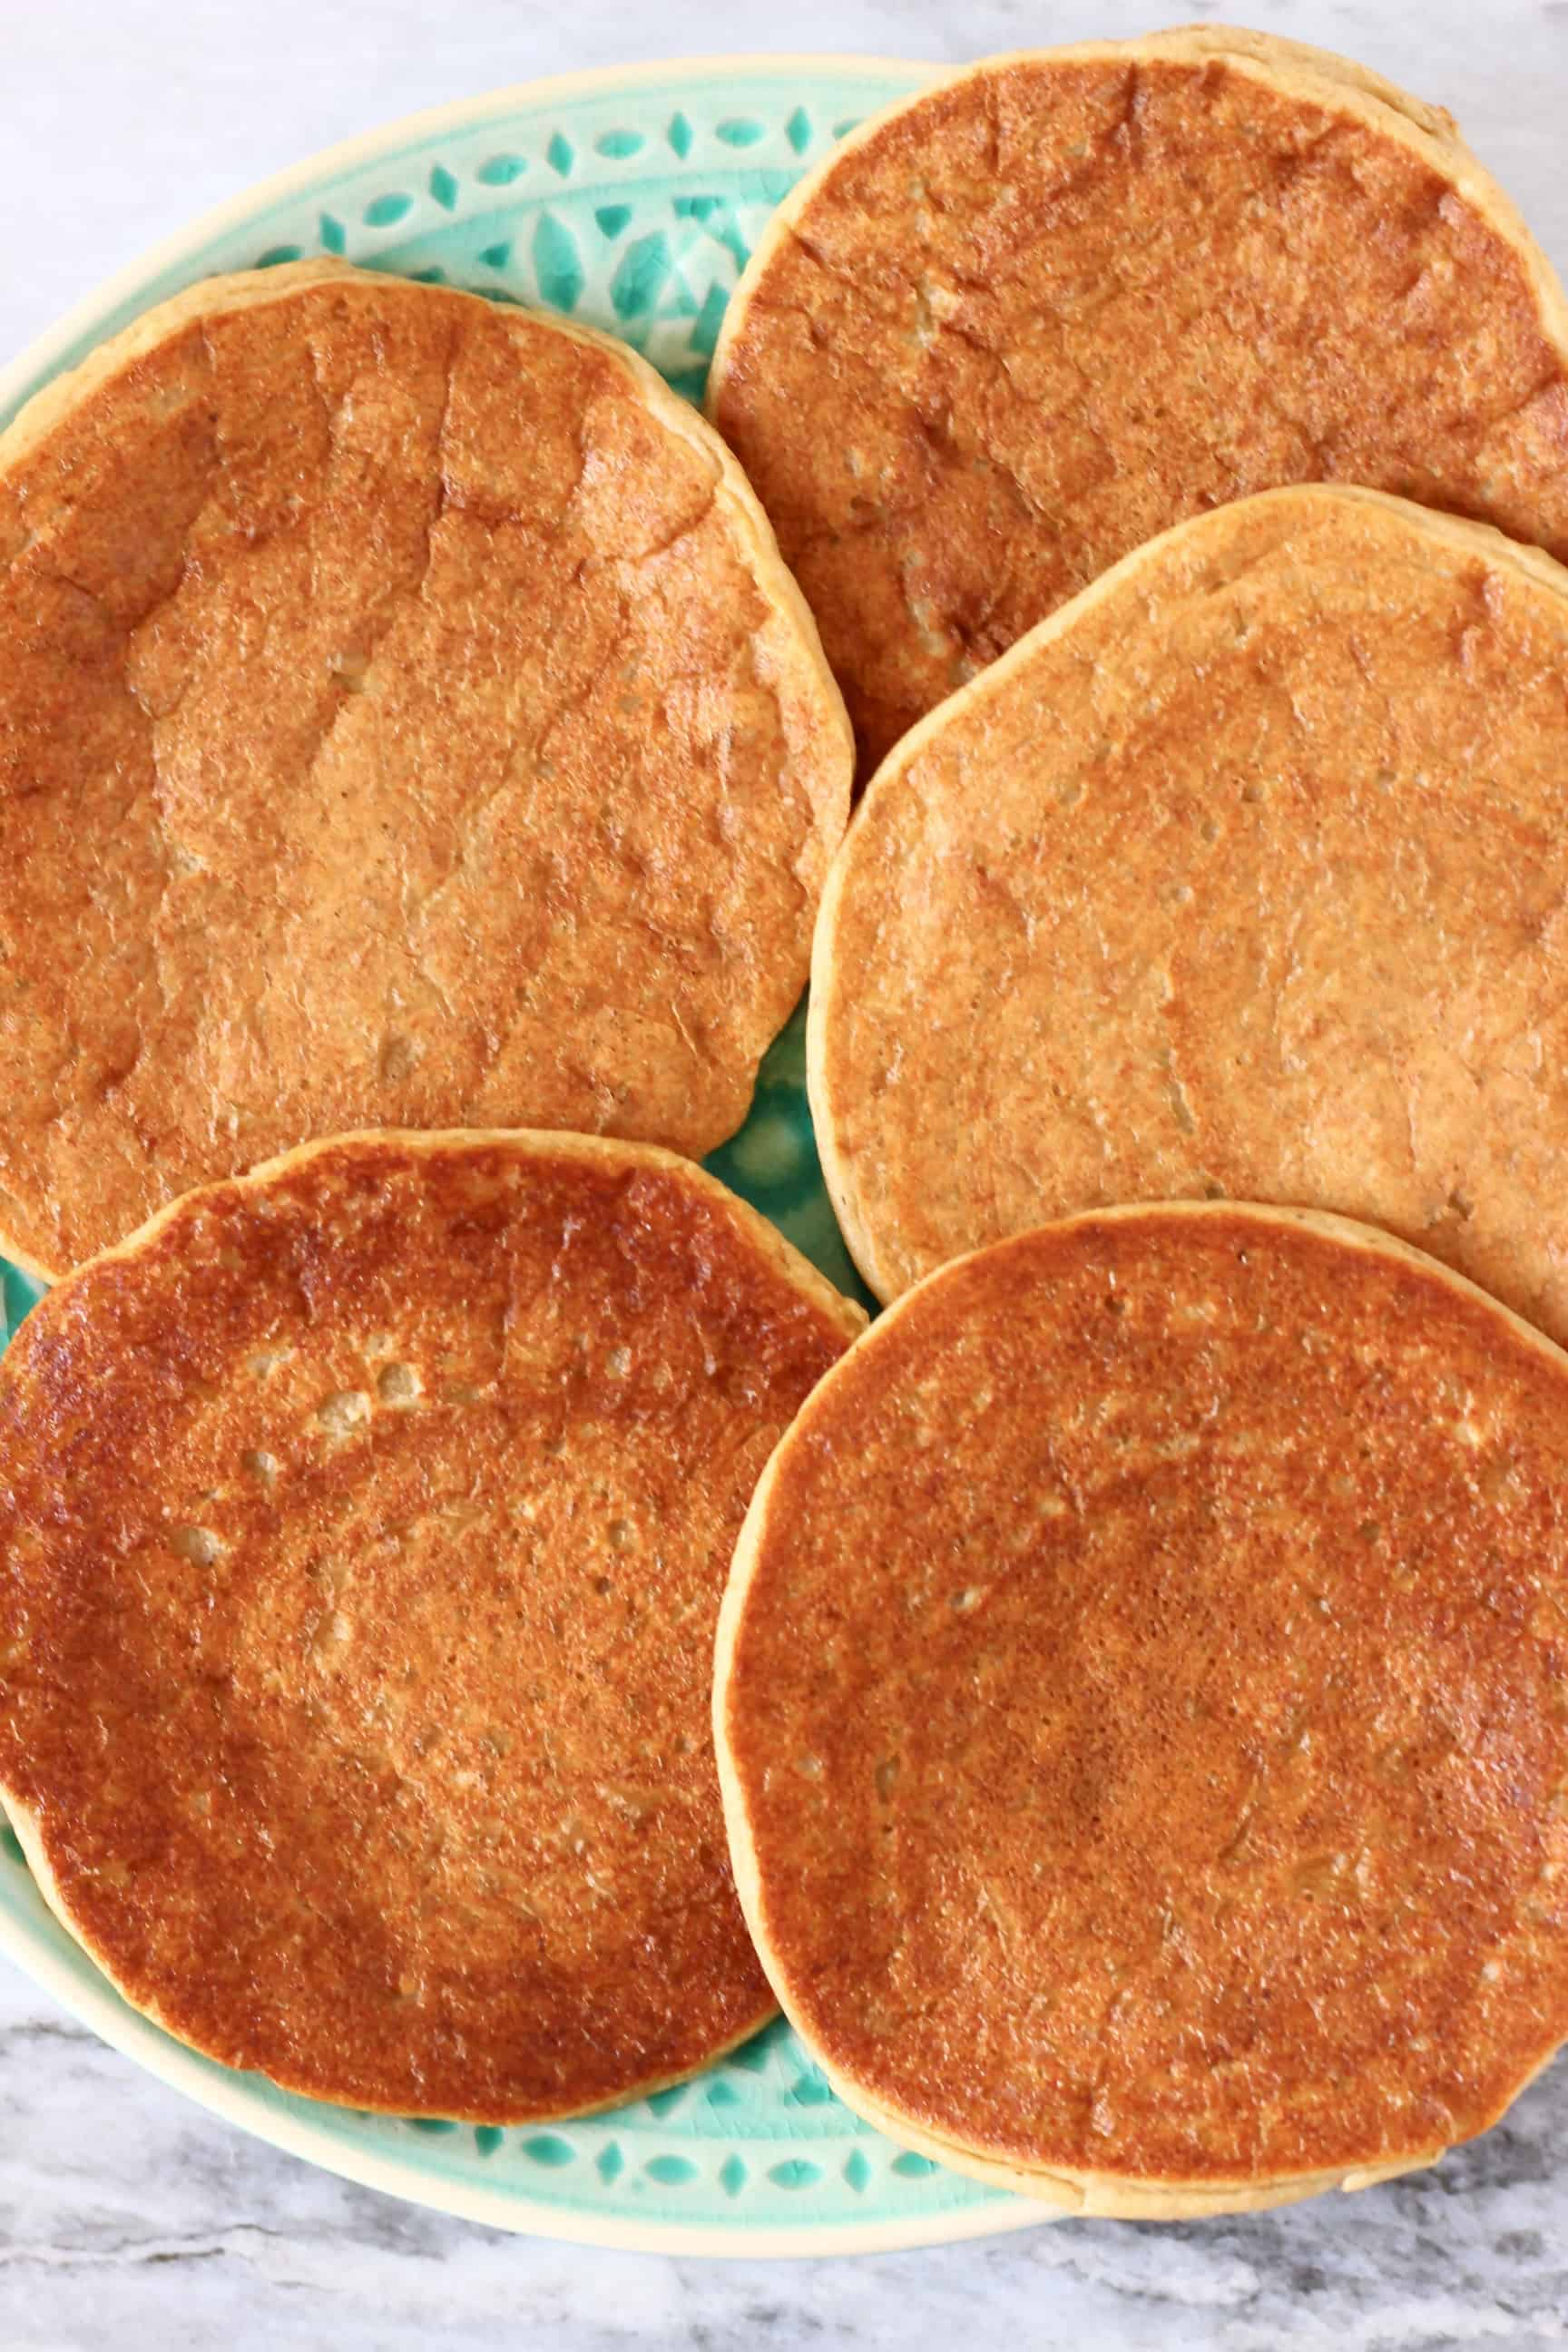 Five gluten-free vegan protein pancakes on a green plate